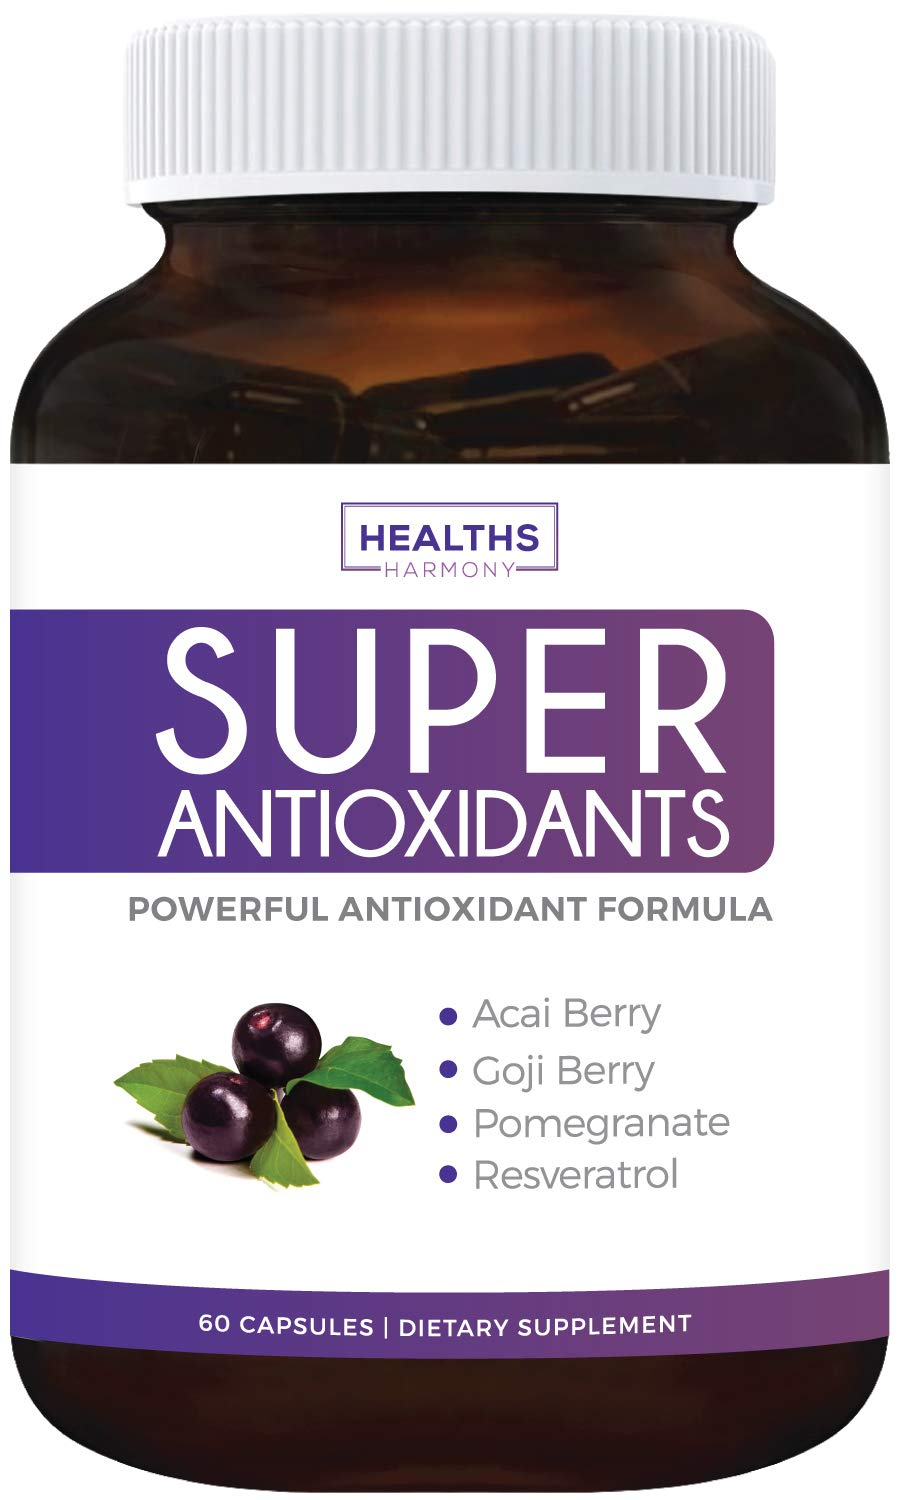 Super Antioxidant Supplement | Powerful Super Food Antioxidants Blend | Acai Berry, Goji Berry, Pomegranate & Trans Resveratrol | Natural Herbal & Fruit Formula | Skin Care | Made in USA | 60 Capsules